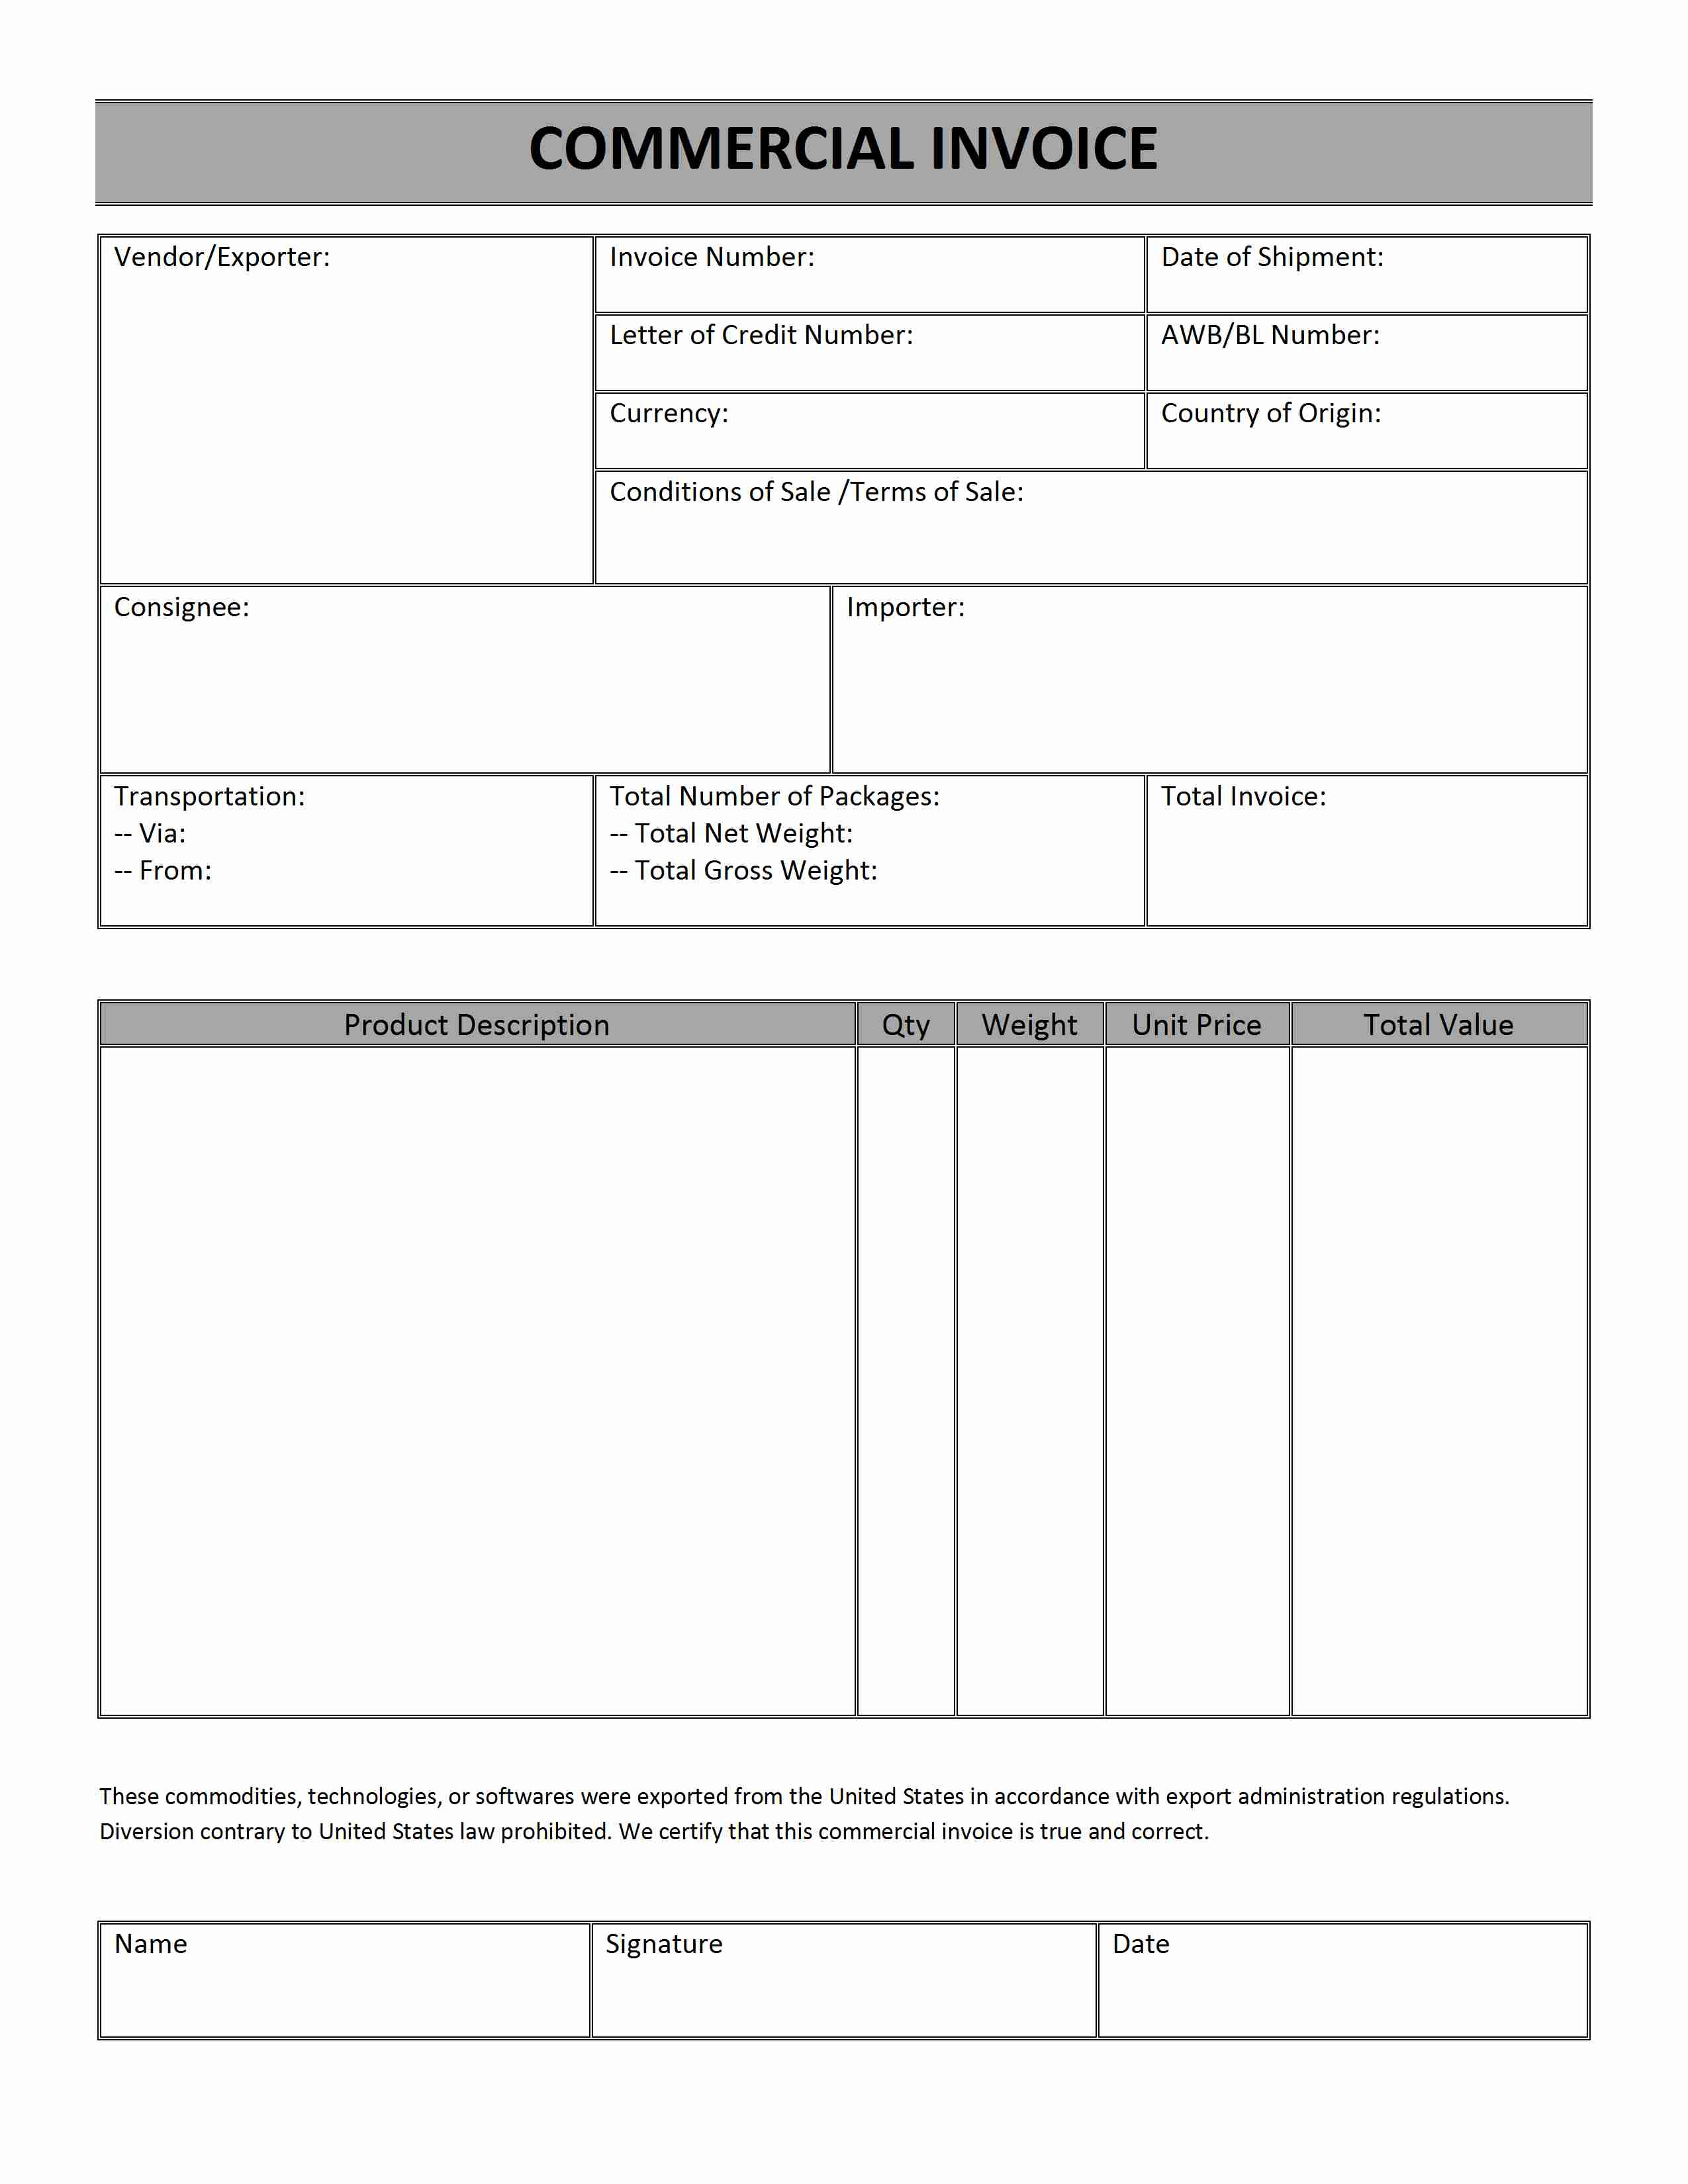 Hucareus  Scenic Printable Sales Invoice Simple Invoice Form Free Invoice  With Hot Printable Receipt Free  Free Printable Raffle Tickets  Receipt   Printable With Captivating Refund No Receipt Also Asda Receipt Guarantee In Addition Take Receipt And Apartment Rental Receipt Template As Well As Rent Receipt Template Uk Additionally Sample Receipt Forms From Happytomco With Hucareus  Hot Printable Sales Invoice Simple Invoice Form Free Invoice  With Captivating Printable Receipt Free  Free Printable Raffle Tickets  Receipt   Printable And Scenic Refund No Receipt Also Asda Receipt Guarantee In Addition Take Receipt From Happytomco